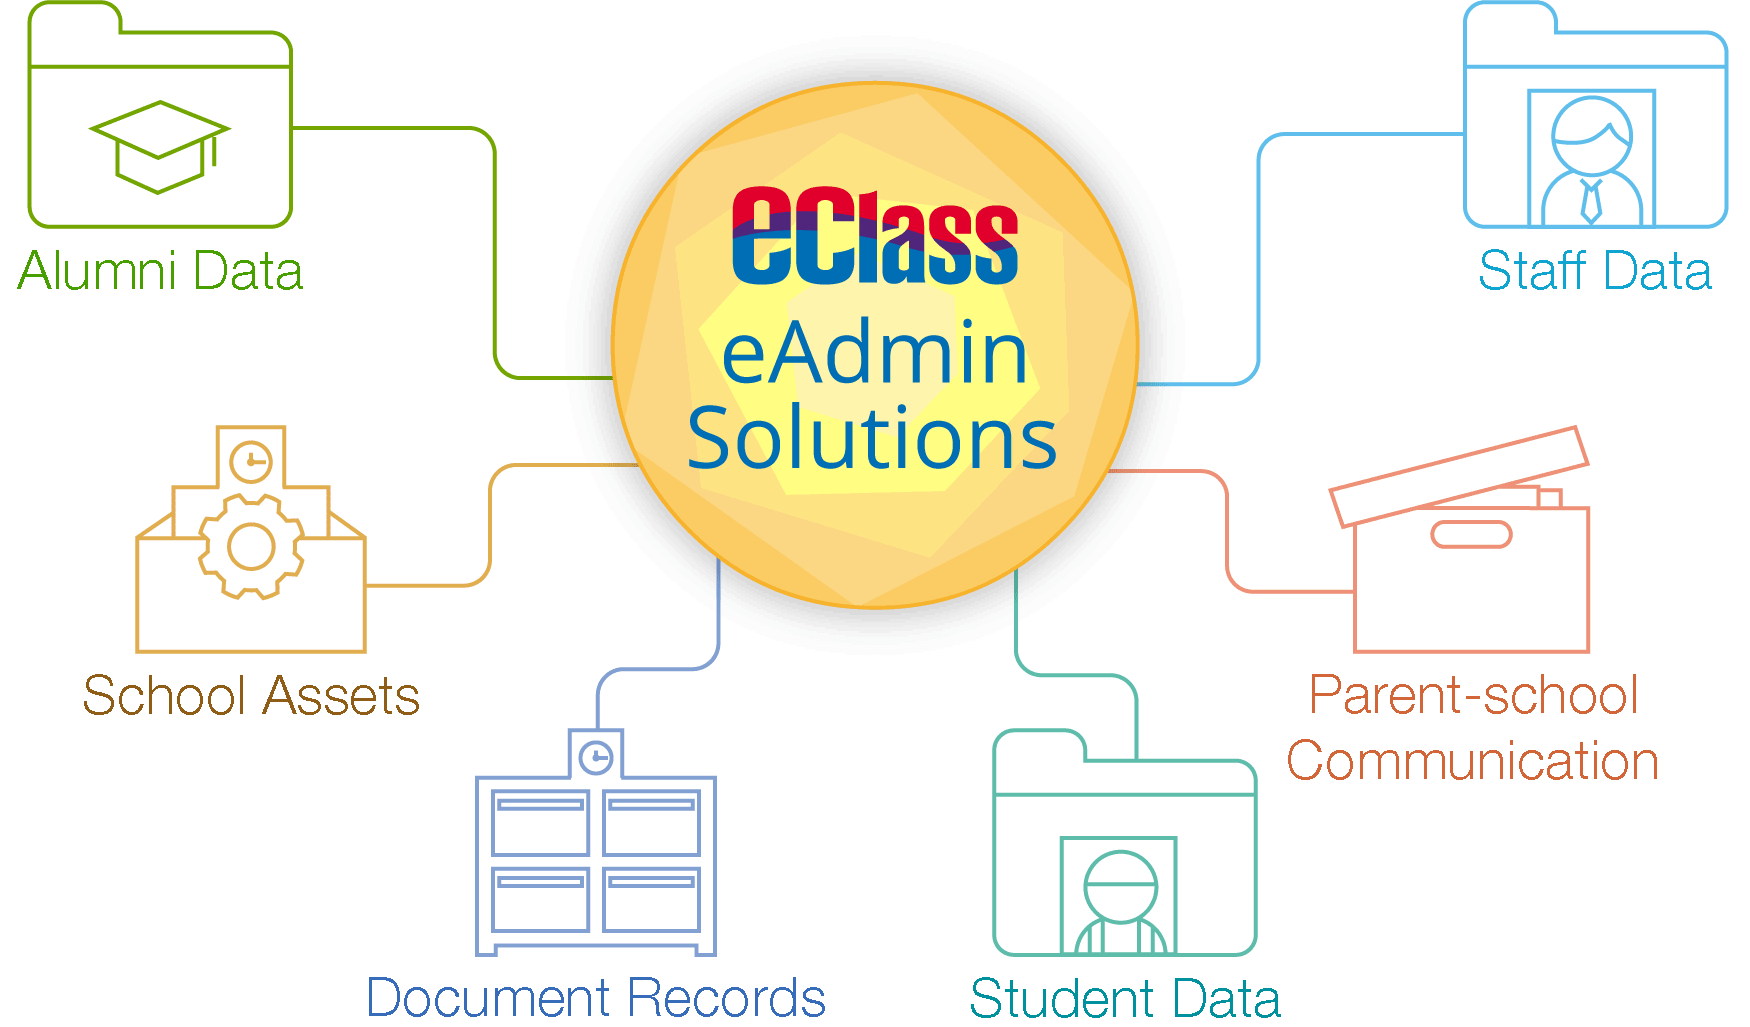 eAdminSolutions_en